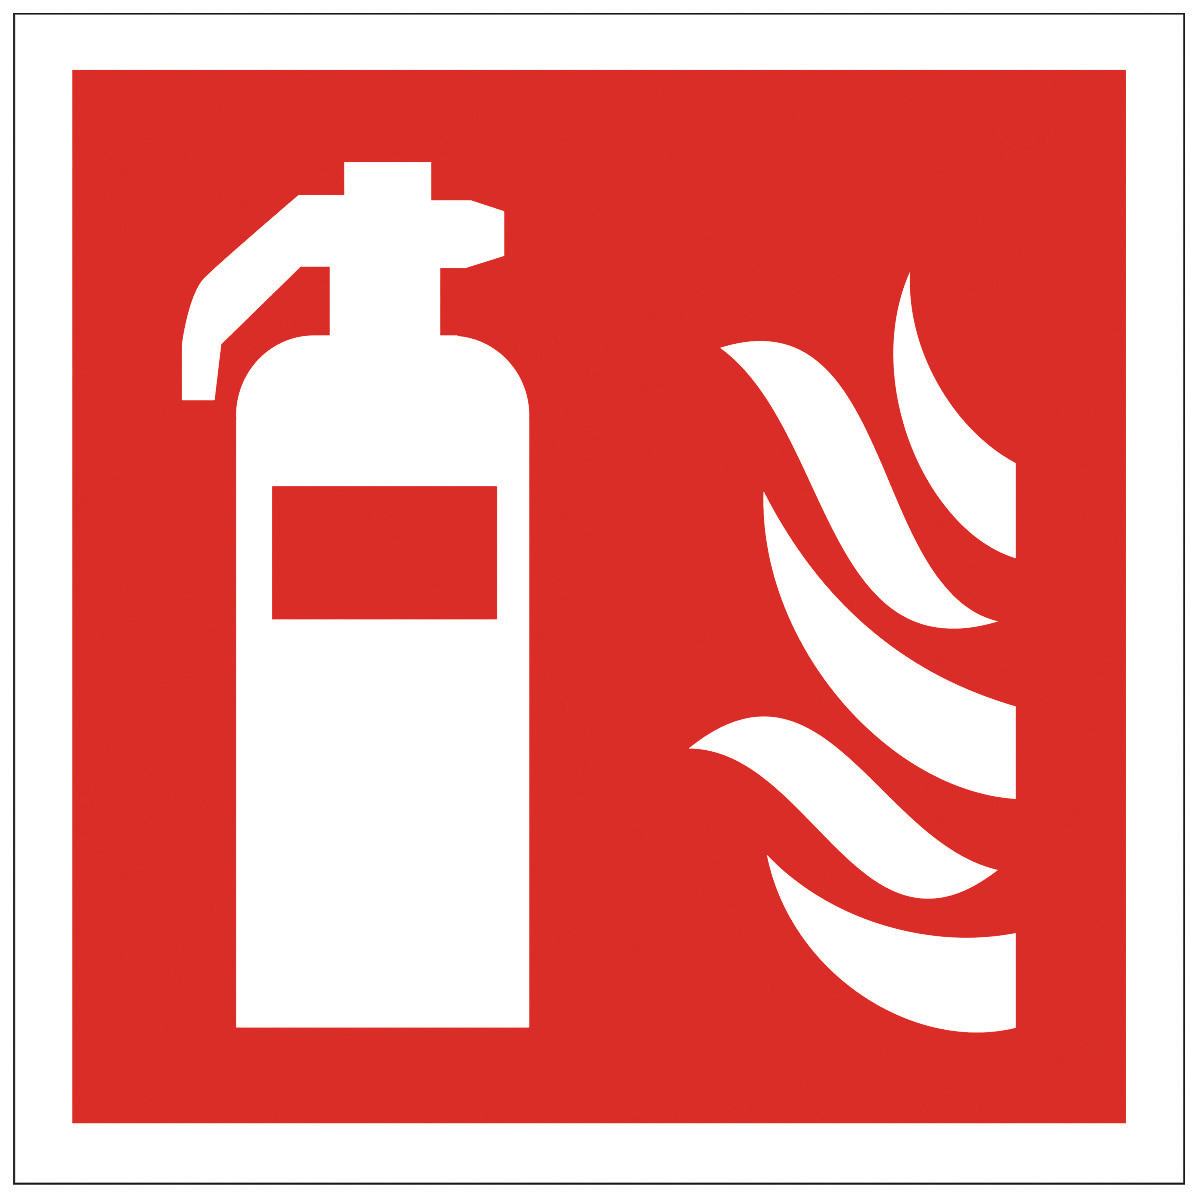 Fire safety logos clipart banner royalty free stock 33 fire safety signs symbols clipart   Pictureicon banner royalty free stock